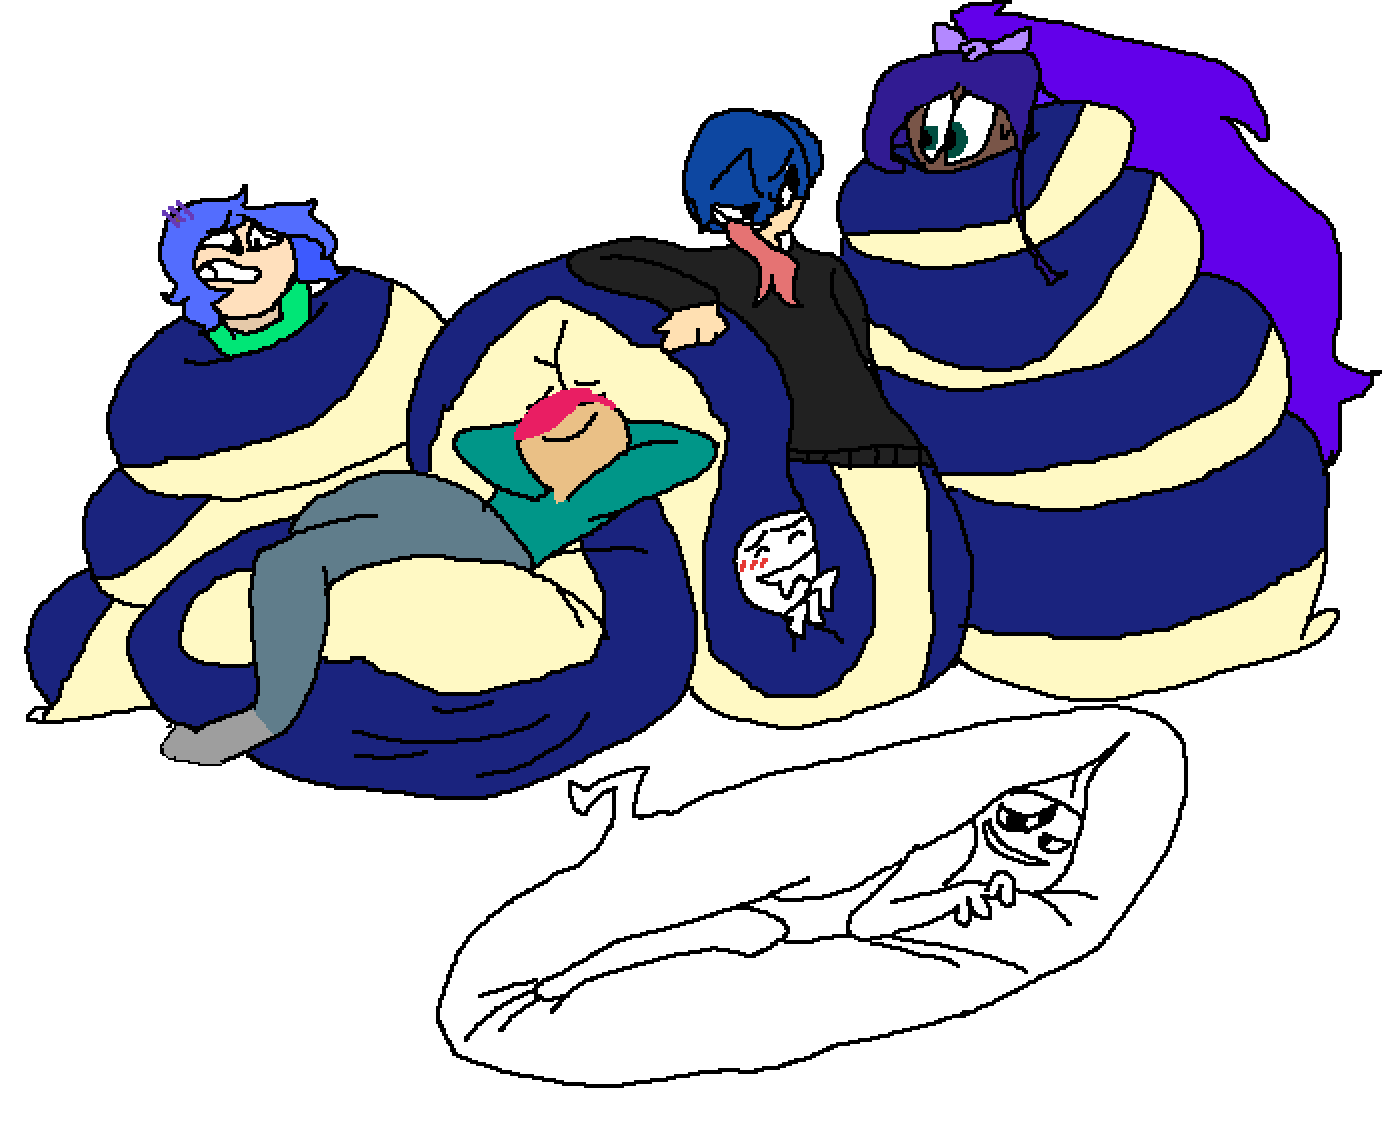 chilling in a big snek by Serif